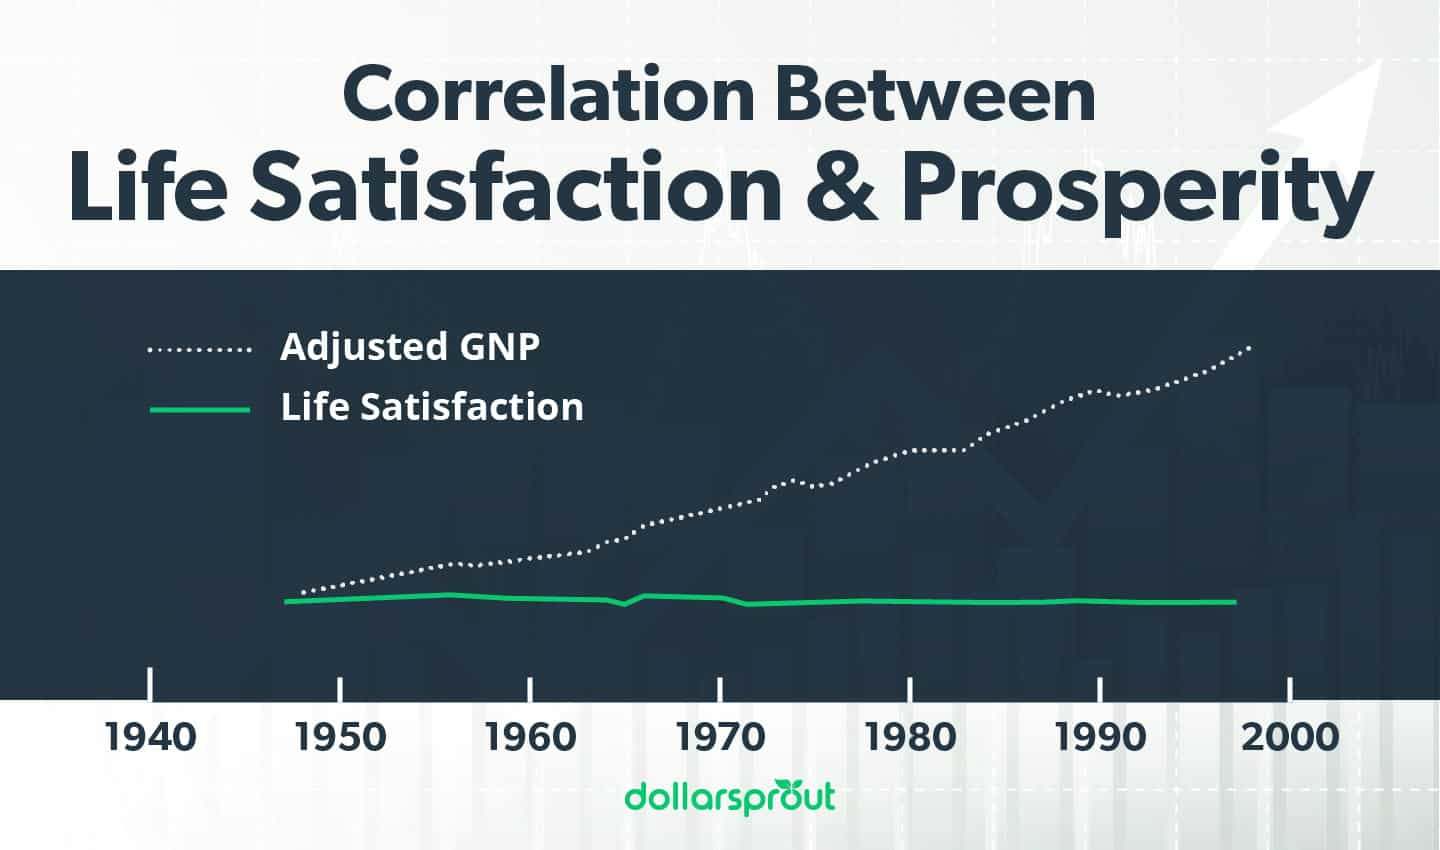 Correlation between life satisfaction and prosperity